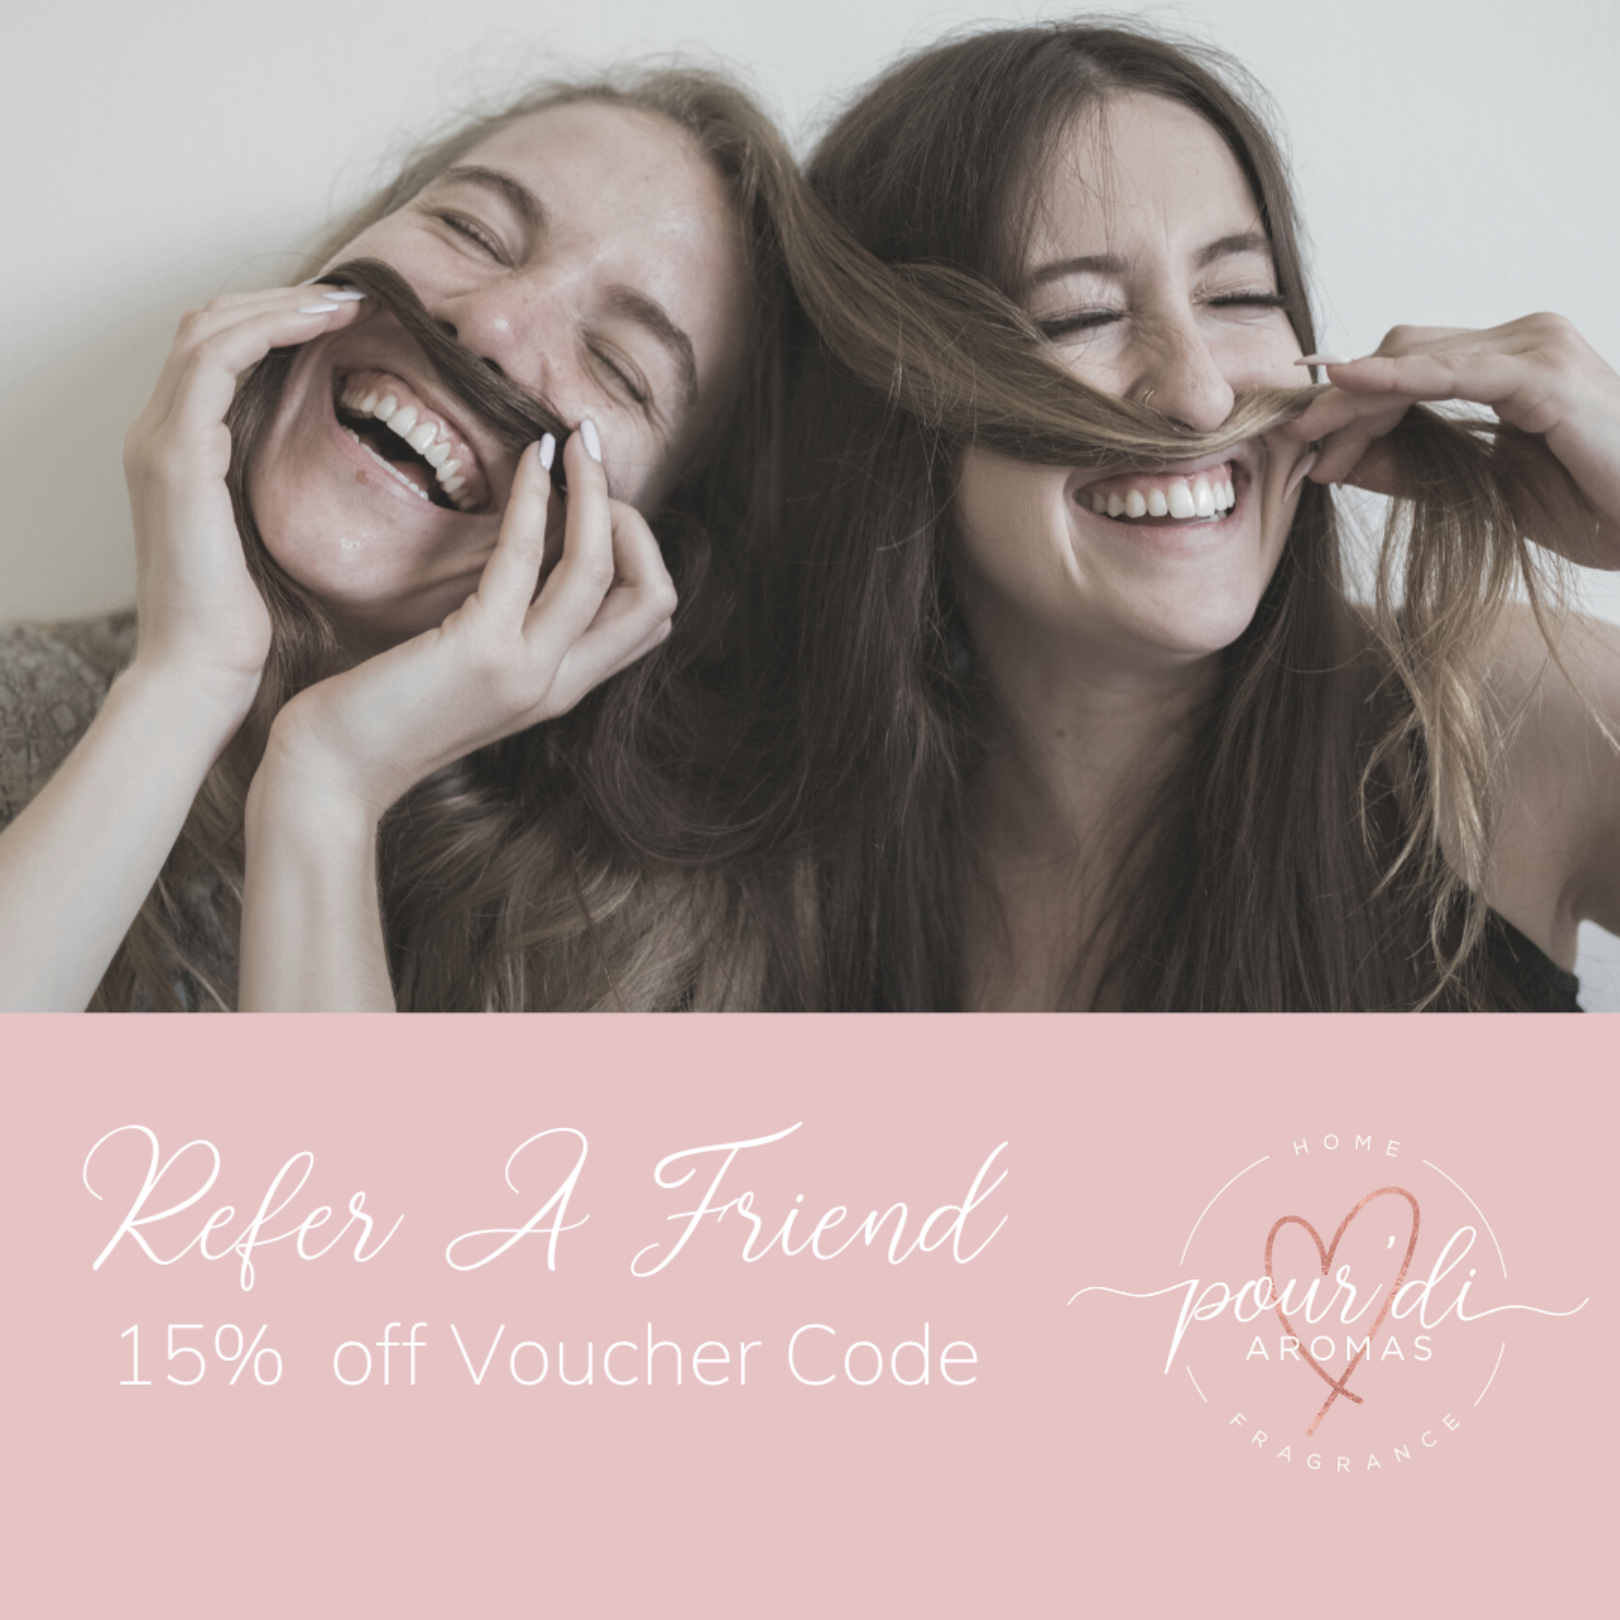 Refer a friend Loyalty Scheme